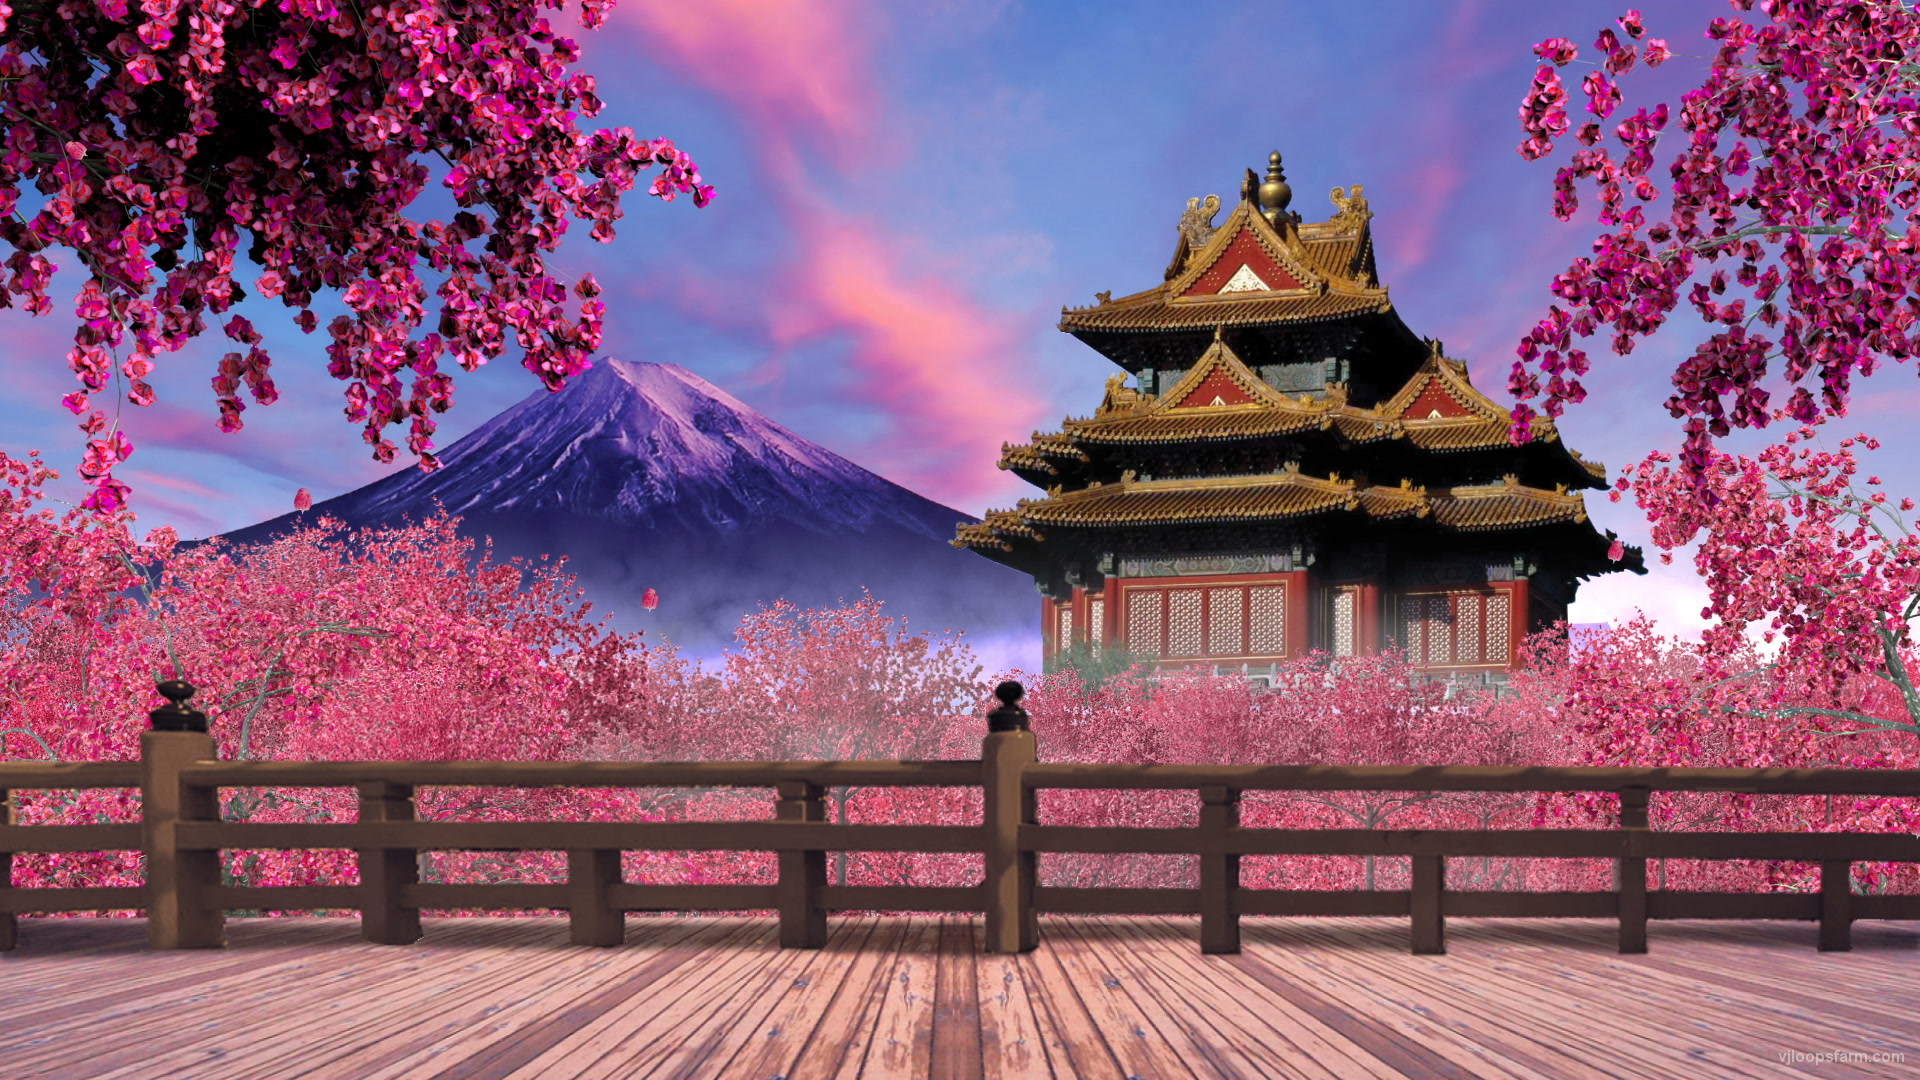 Japanese Garden Wallpapers: VJ Loop. Download Full HD Vj Loop